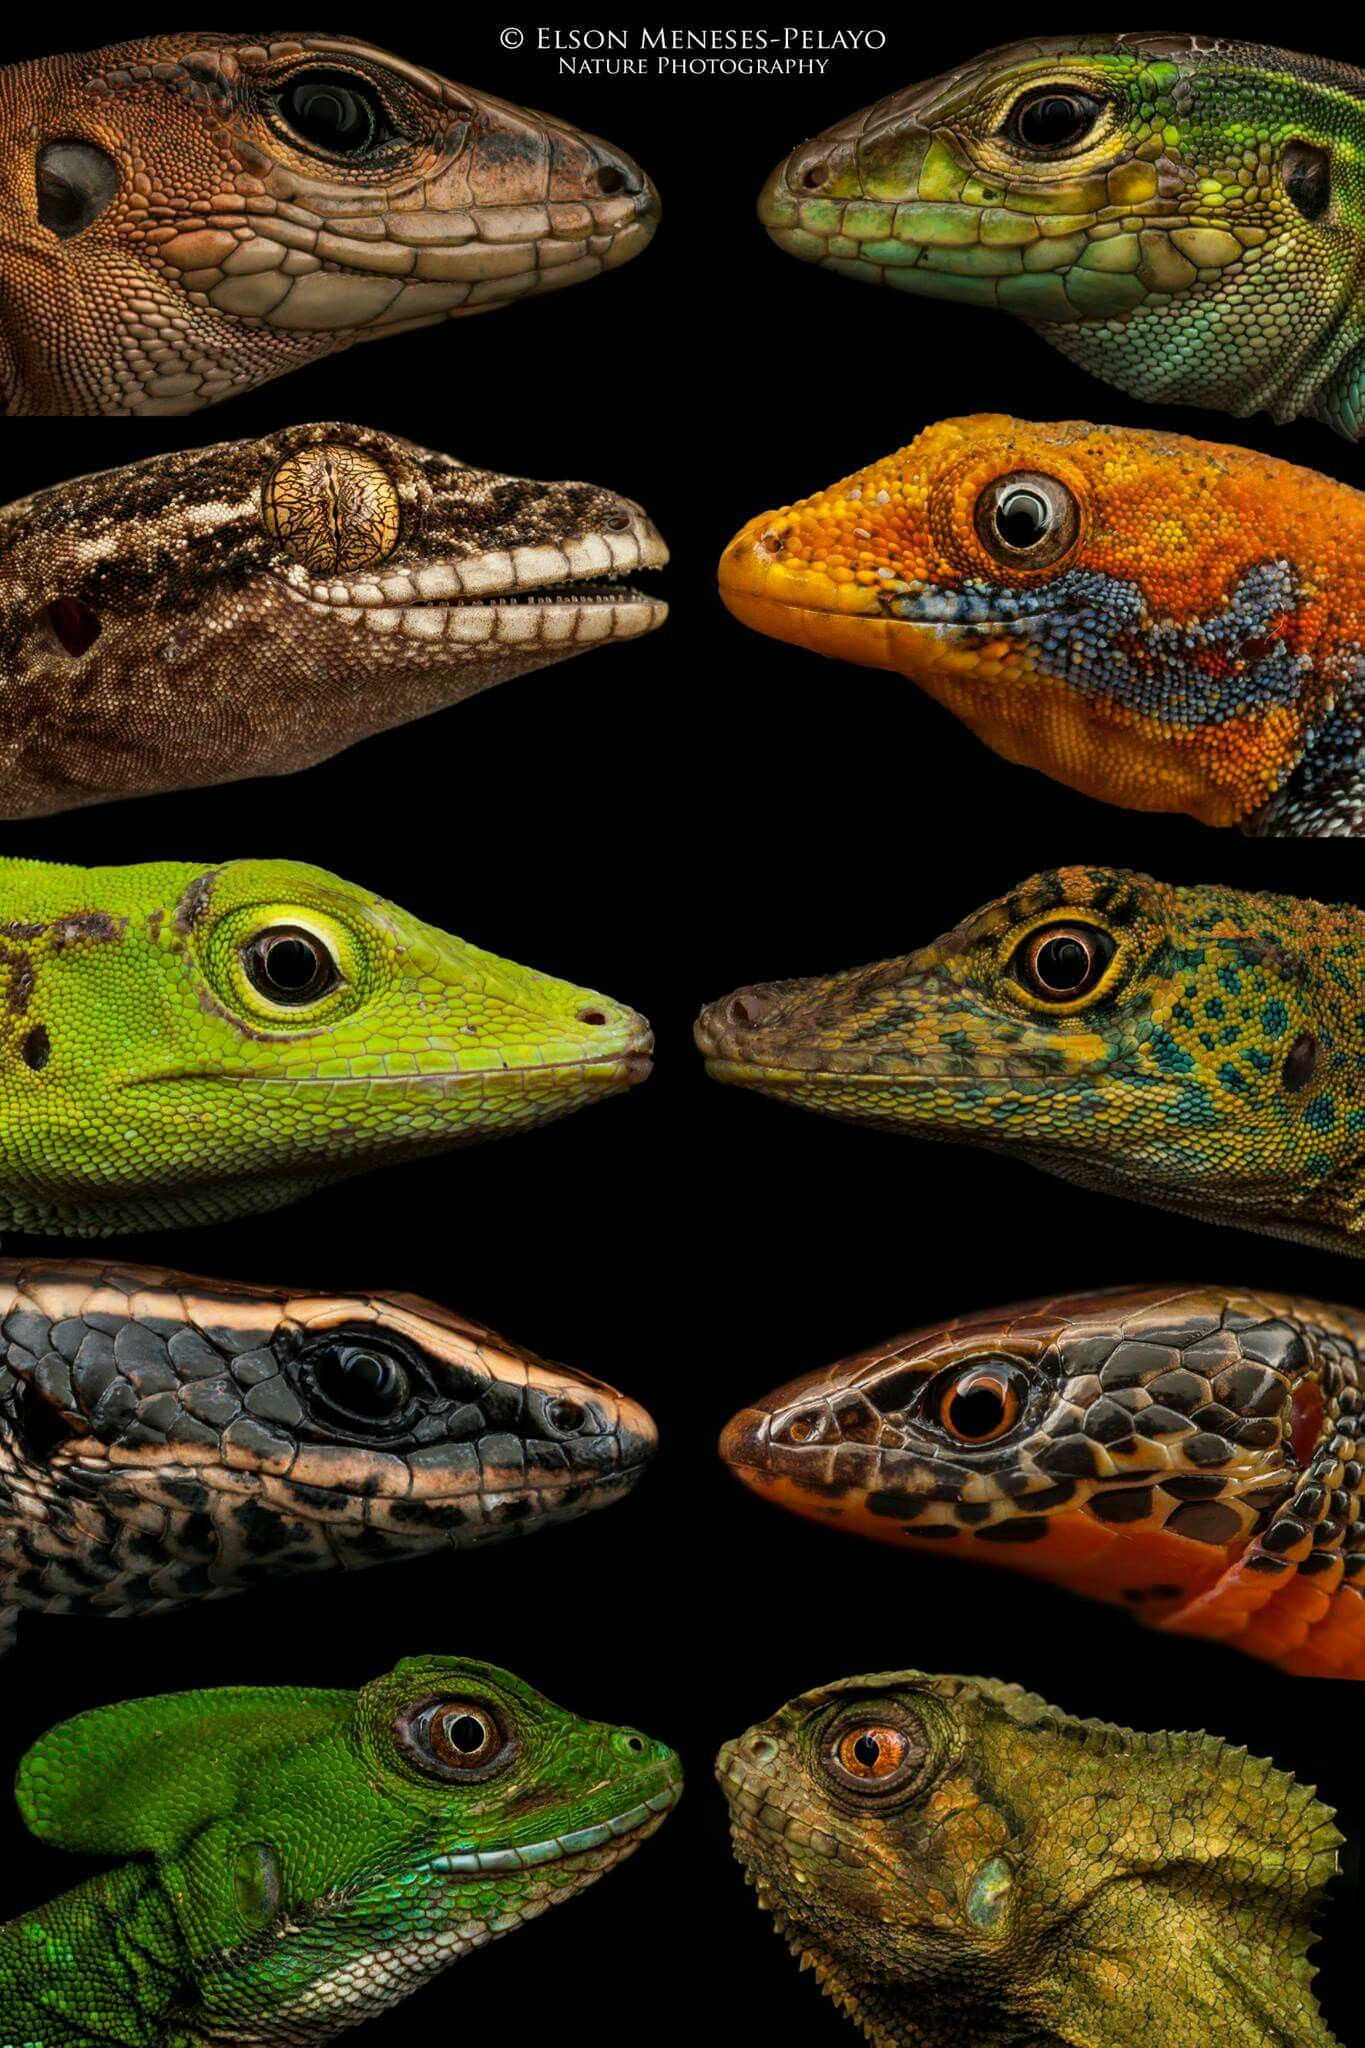 Pin by adgen on reptiles pinterest lizards reptiles and amphibians